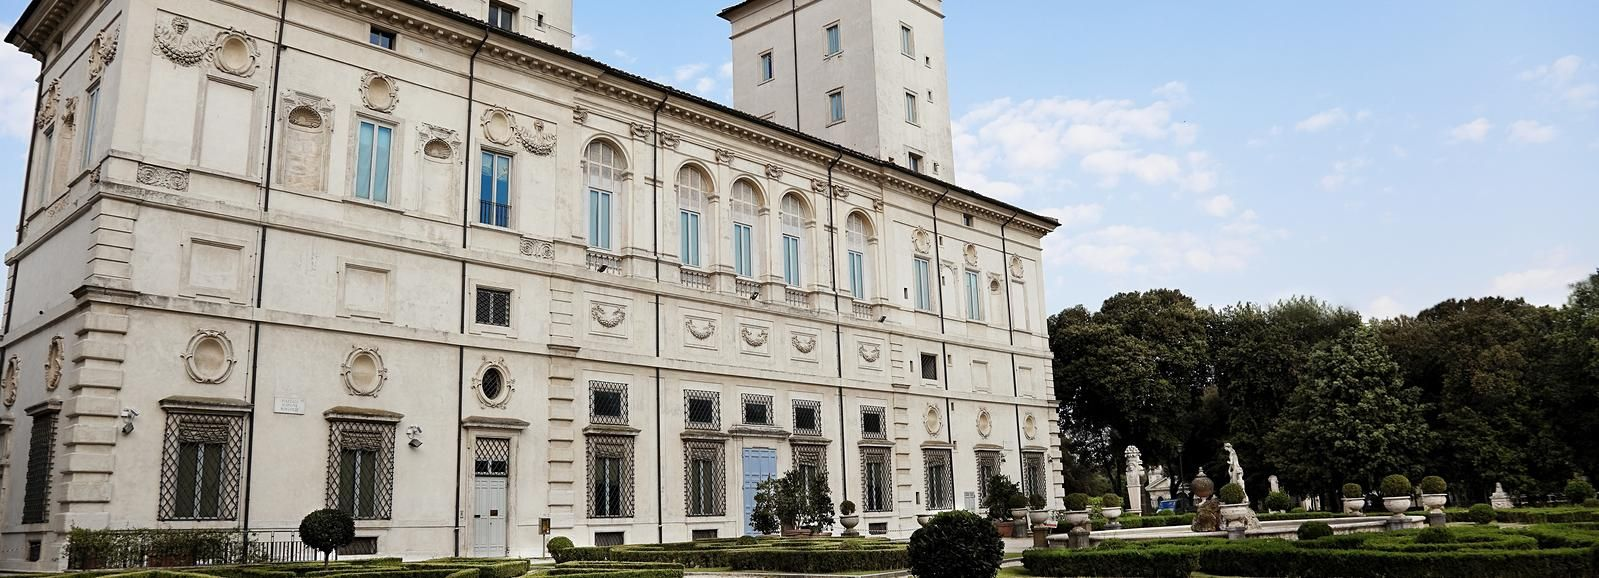 Borghese Gallery and Gardens 3-Hour Private Tour